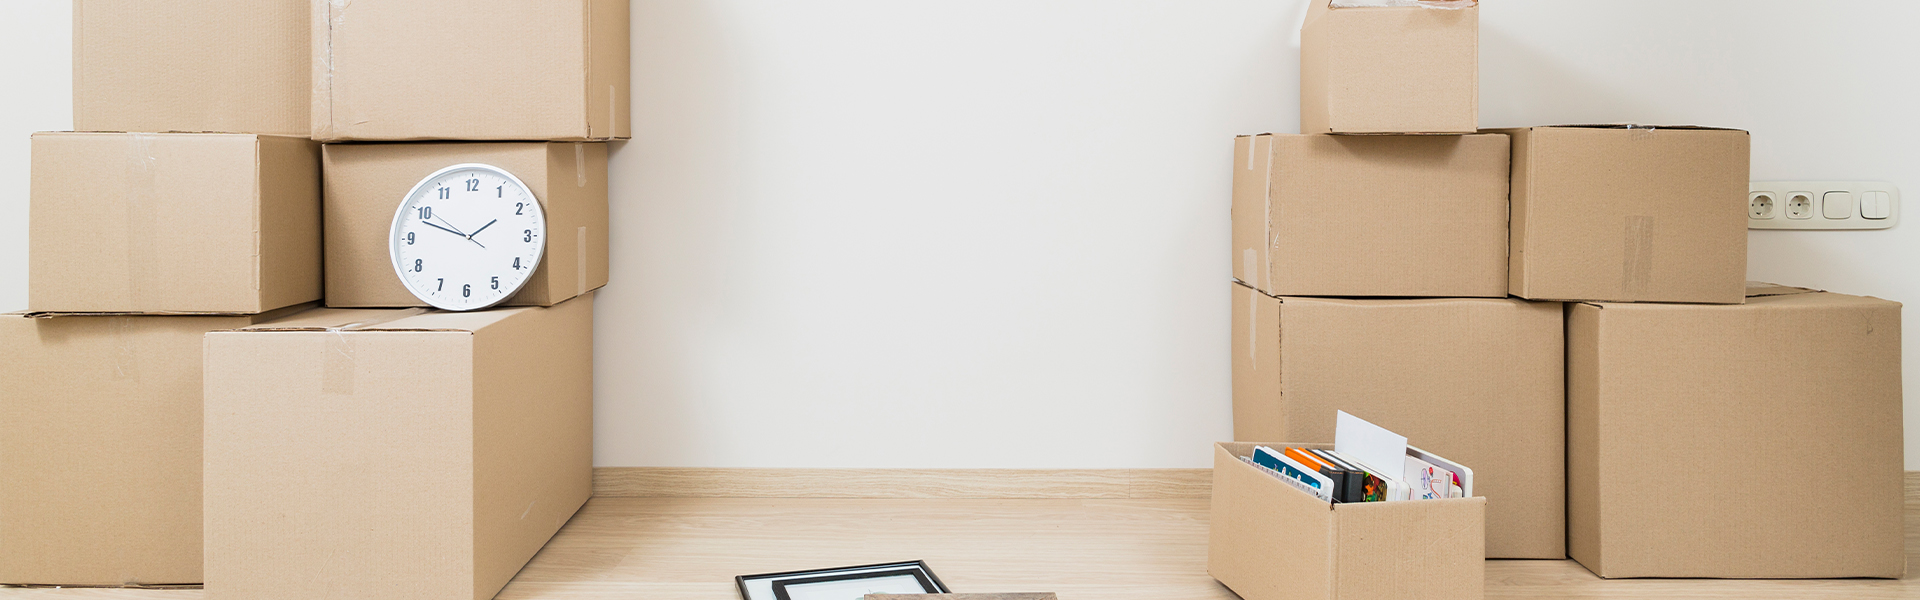 5-Things-to-Remember-When-Moving-House